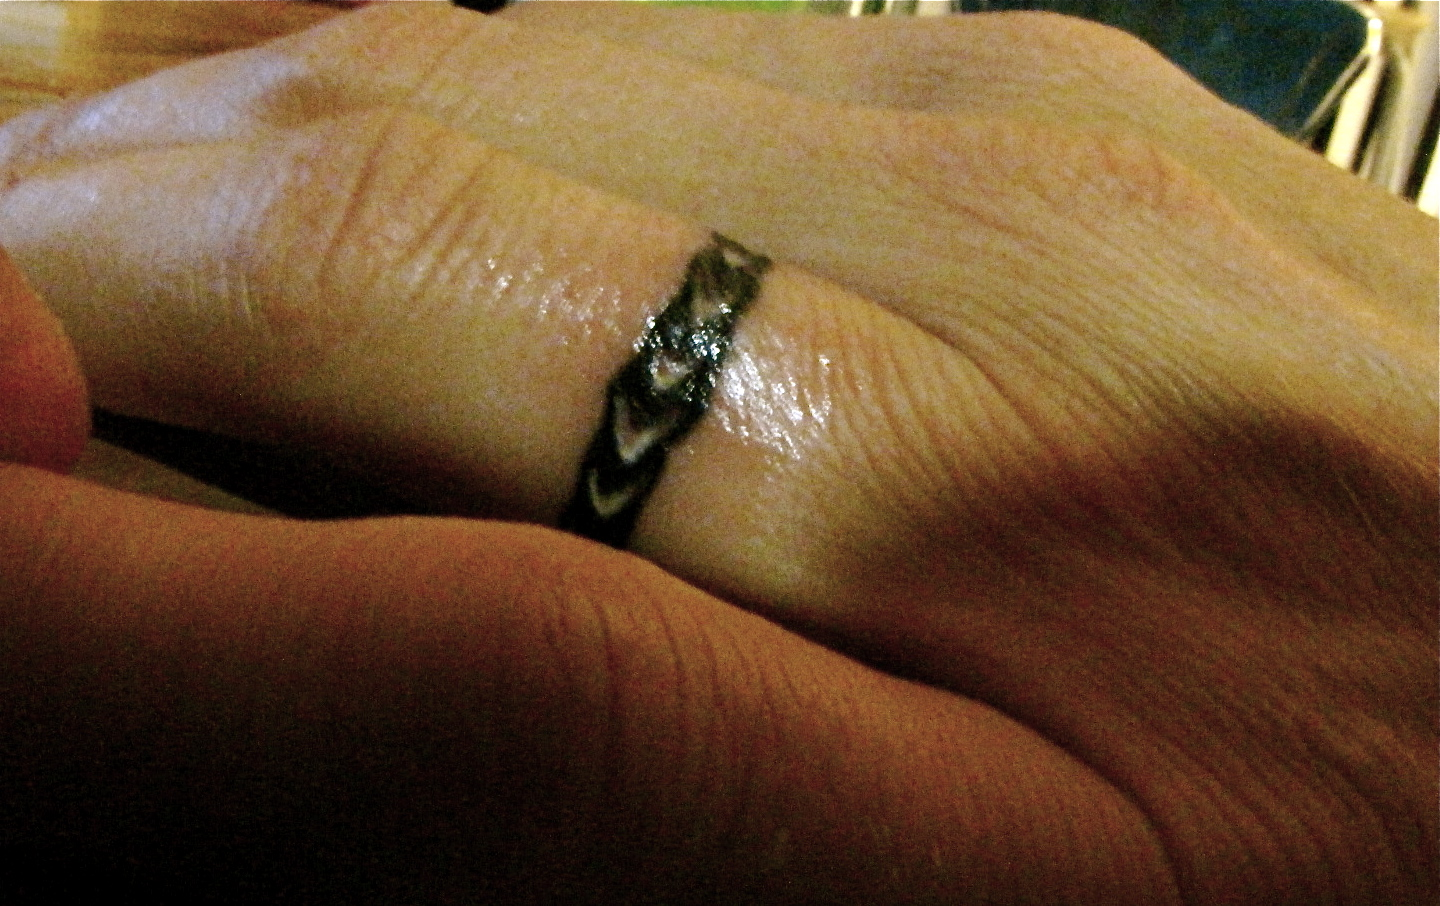 the story of leilani & shawn: Wedding ring tattoos, 2